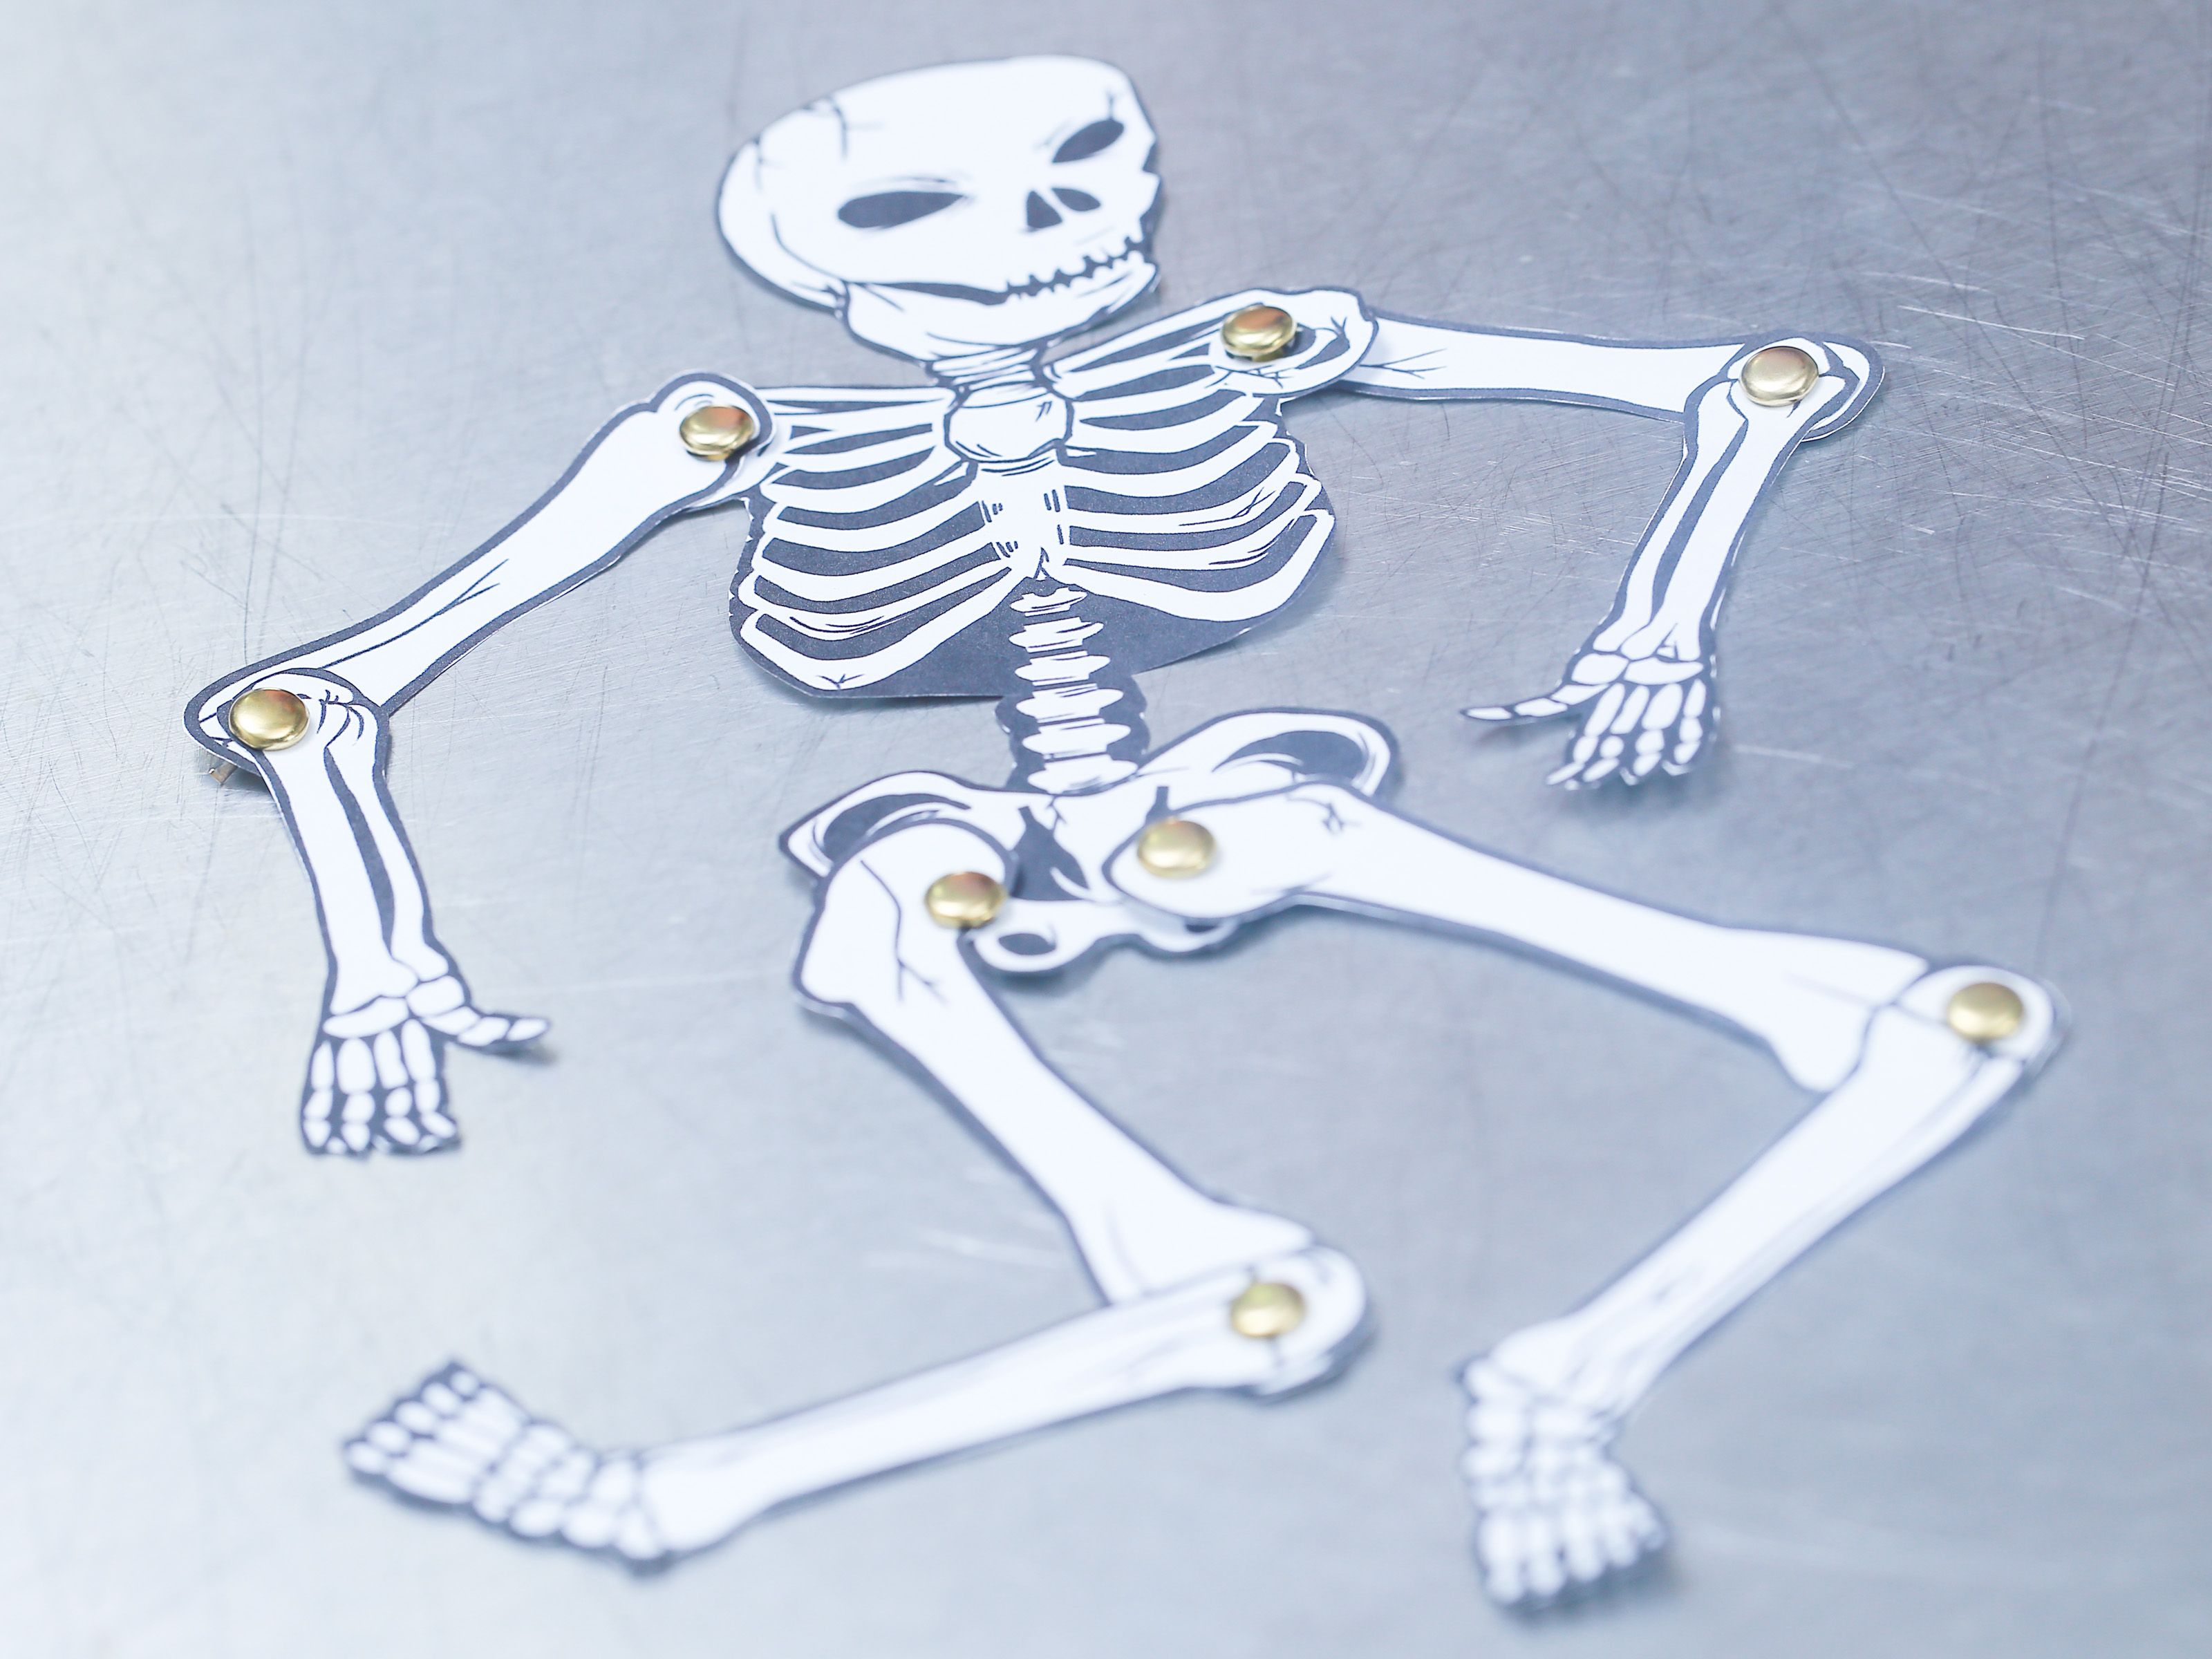 How+to+Make+a+Human+Skeleton+out+of+Paper+--+via+wikiHow.com 4268aa0a7541